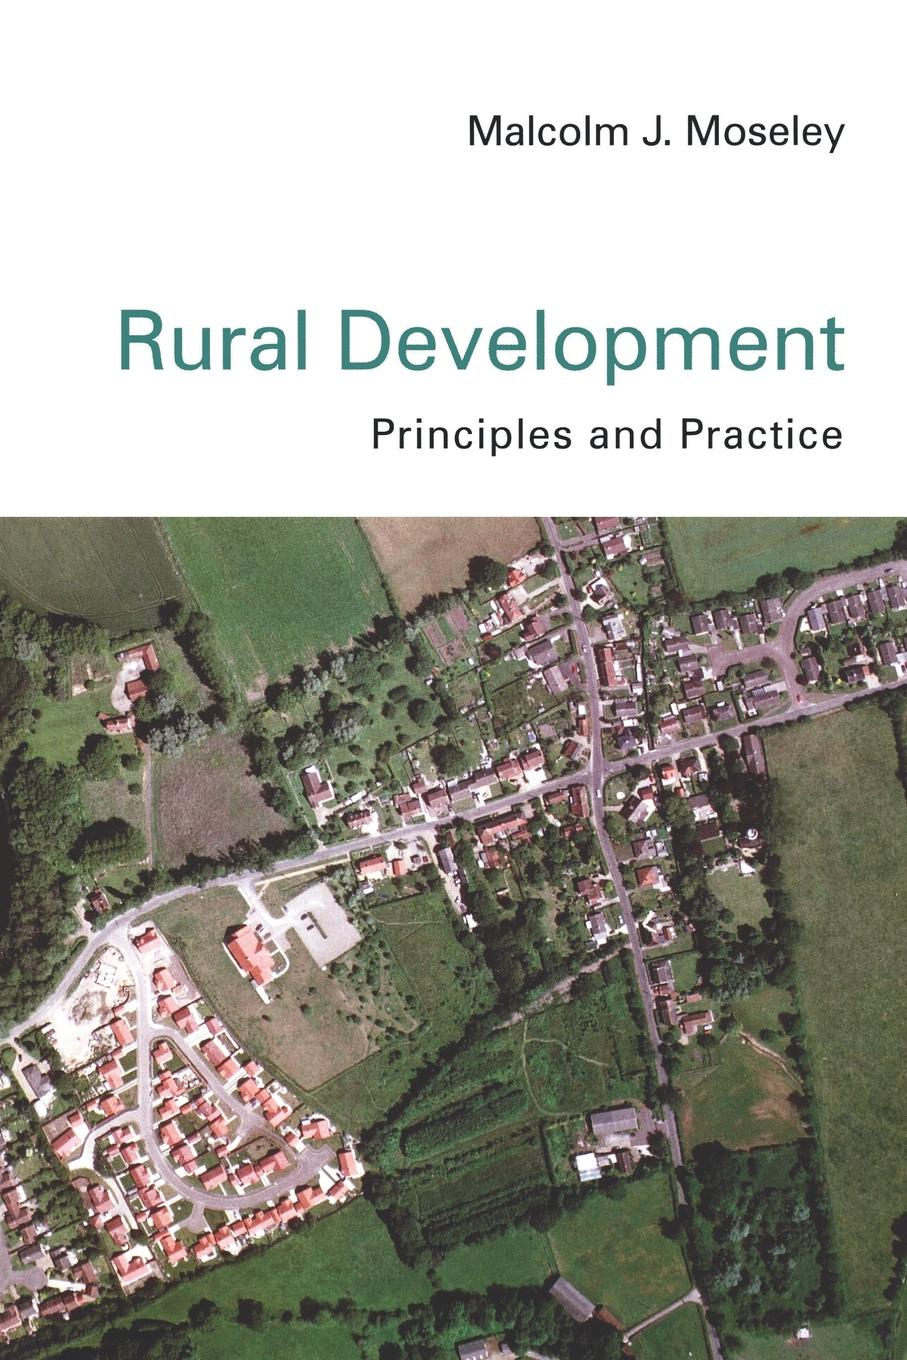 Malcolm J. Moseley Rural Development. Principles and Practice walter pohl l economic geology principles and practice